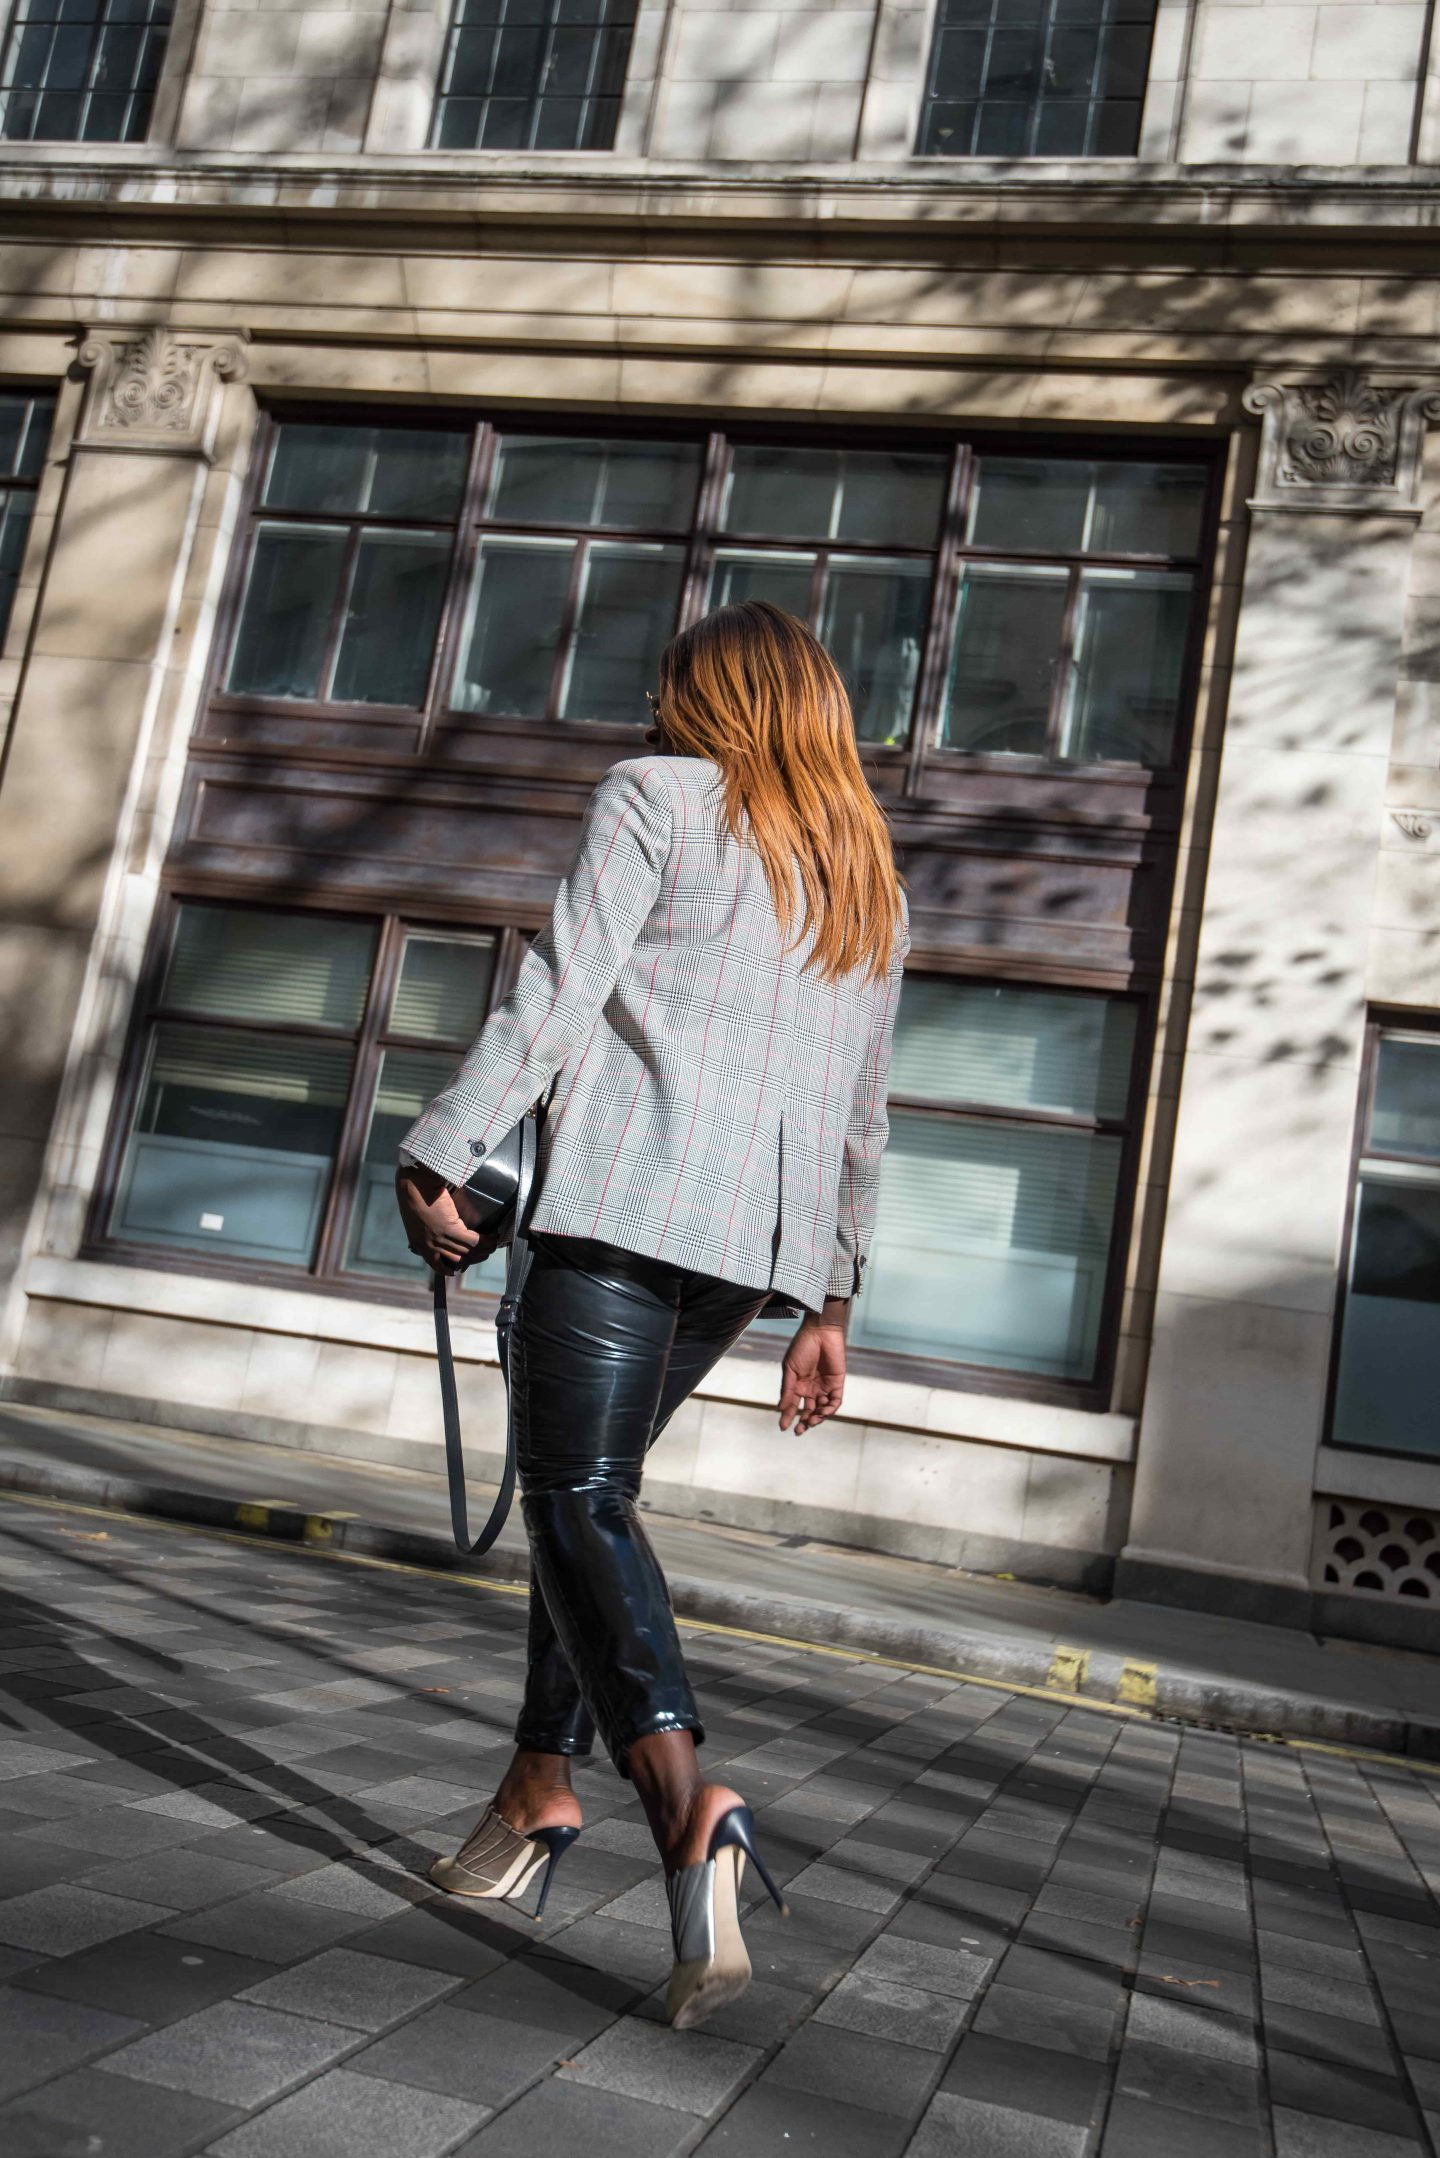 Autumn Workwear & The Vinyl Affect 8 - Zara check blazer - Alexander Wang Bag - vinyl trousers - malone soulier mules - Style and the Sass